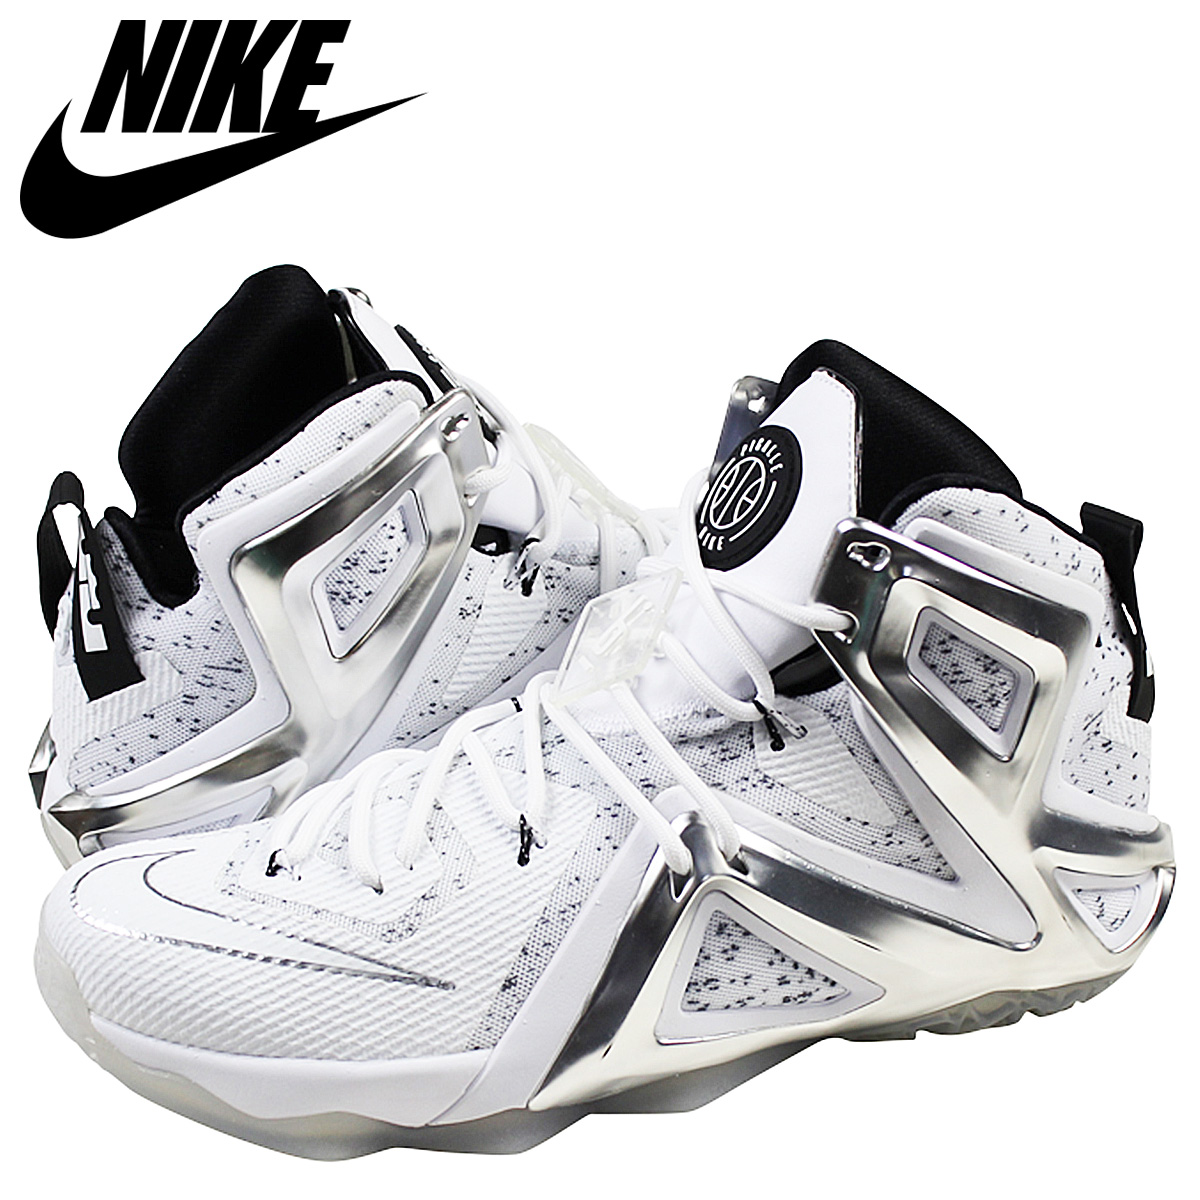 100% authentic 5d2b6 bfedc NIKE Nike LeBron sneakers LAB×PIGALLE LEBRON XII ELITE SP lab Pigalle  LeBron 12 field special 806951-100 white men